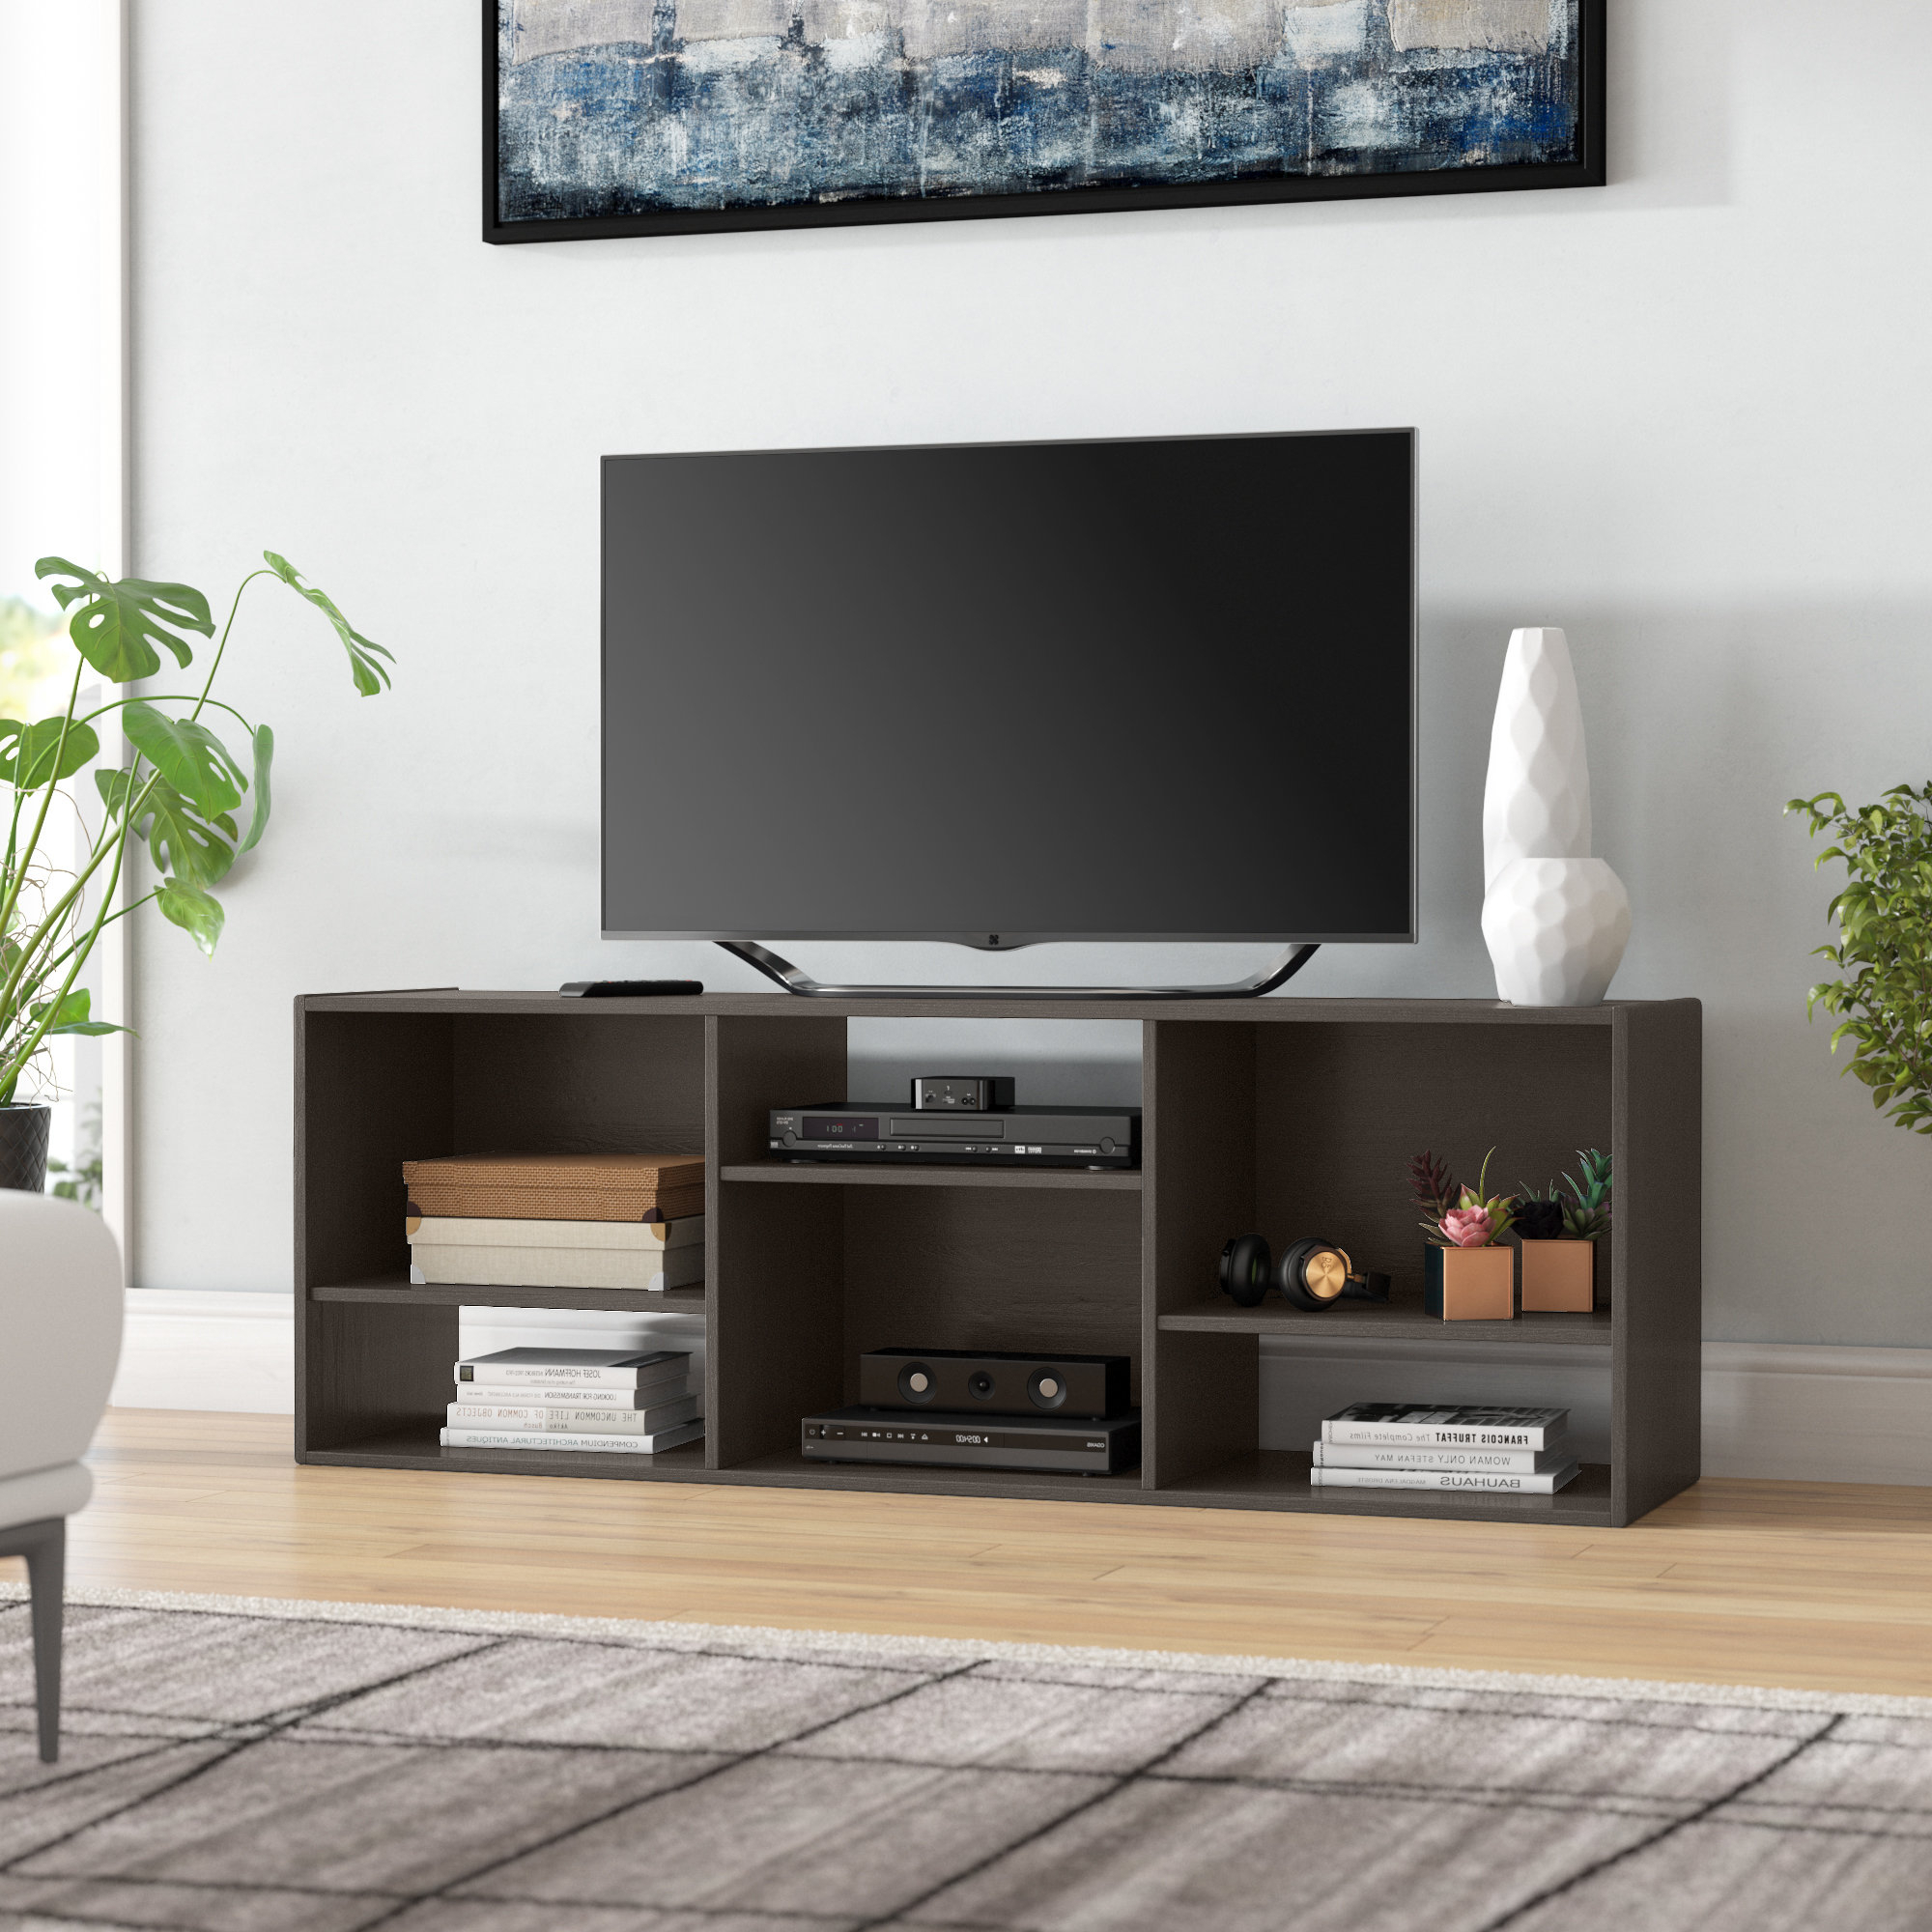 Wayfair With Most Current Kenzie 60 Inch Open Display Tv Stands (Gallery 20 of 20)